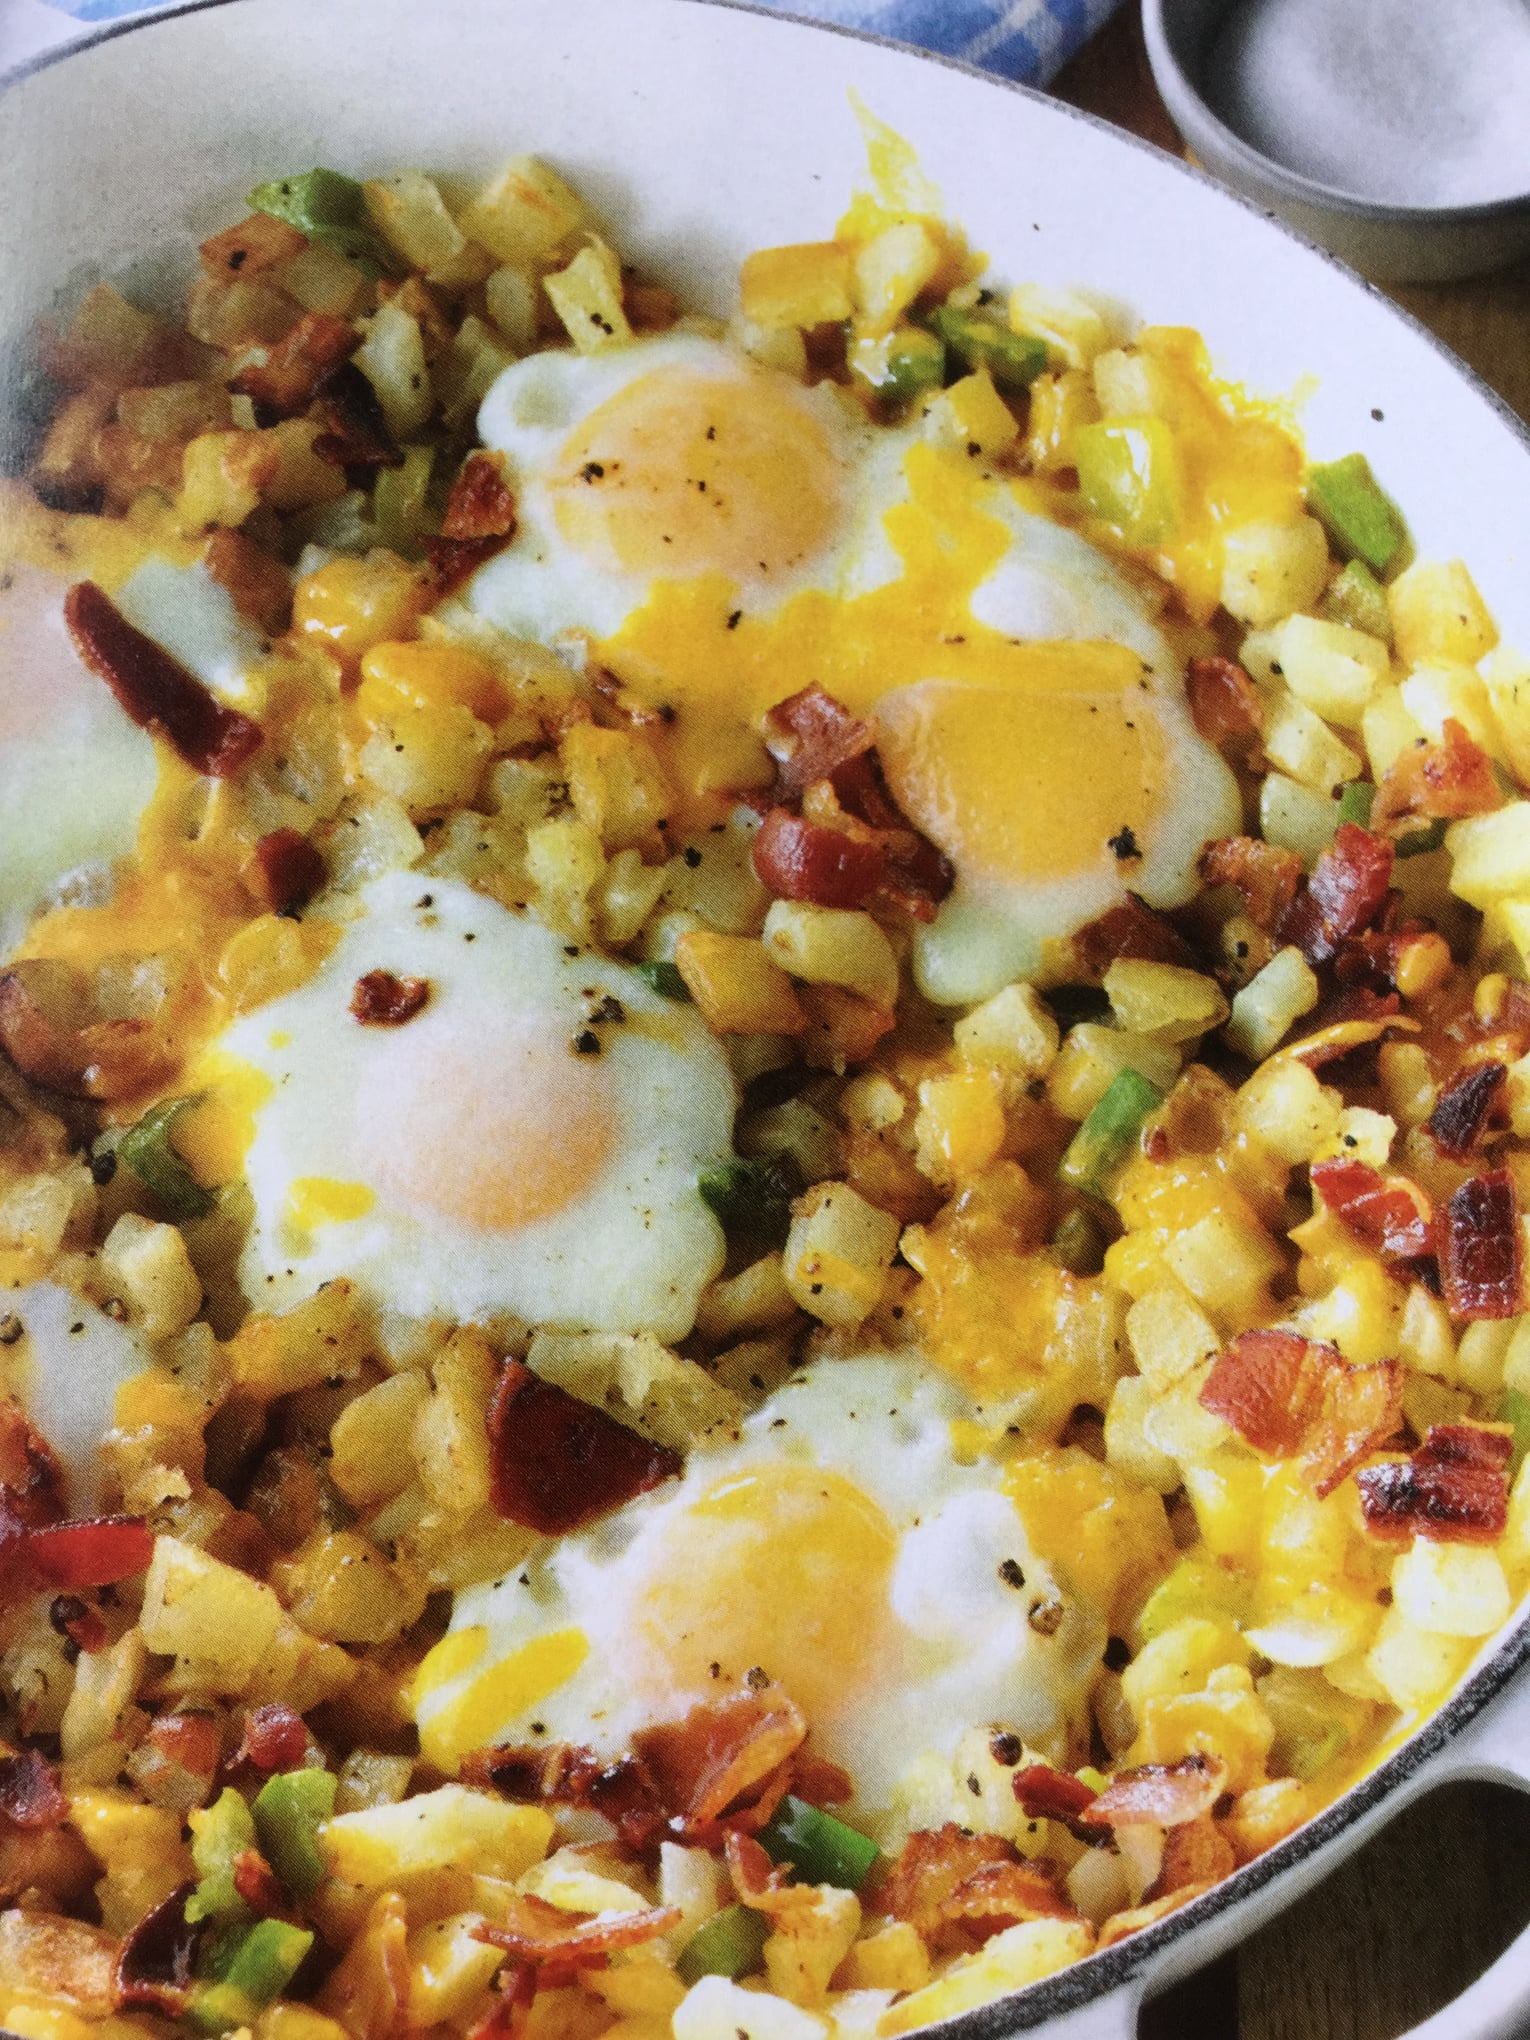 Appealing Brunch In A Skillet